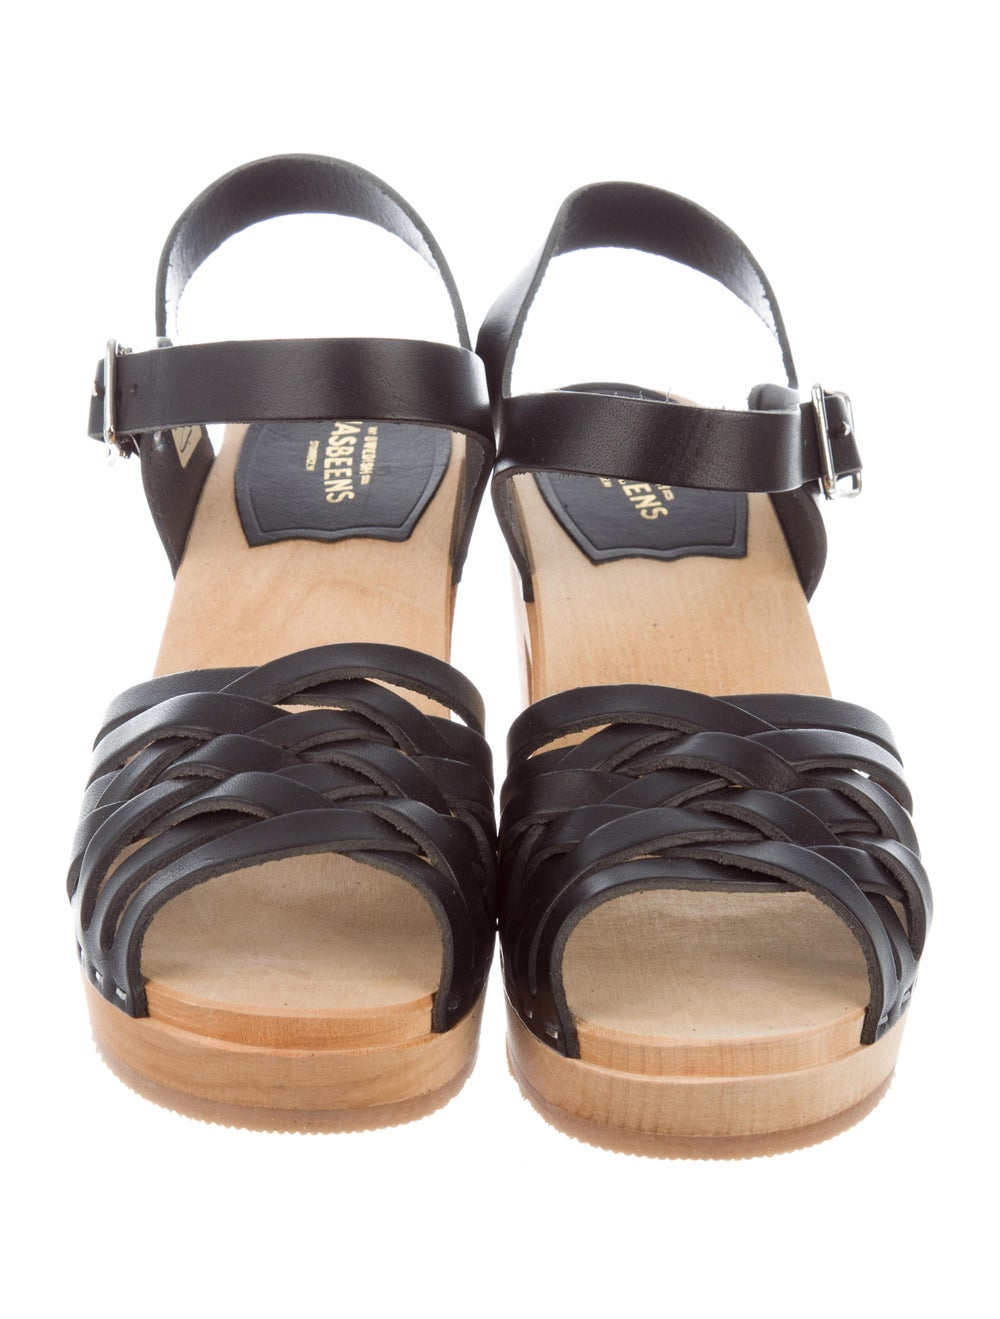 Swedish Hasbeens Braided High Leather Sandals Bla… - image 3